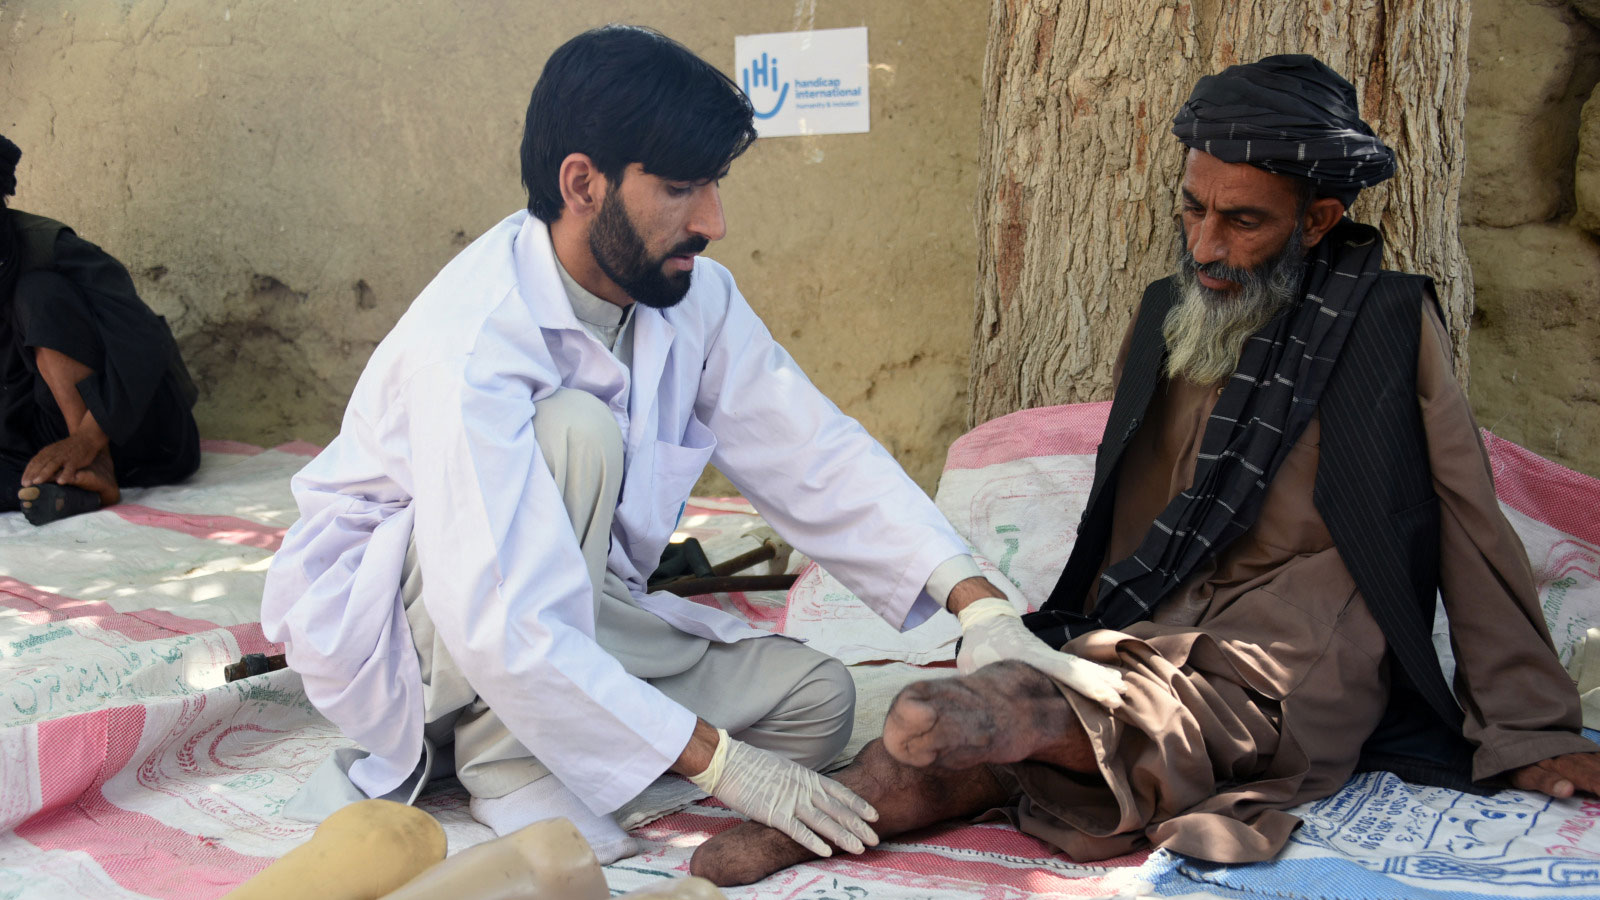 Abdul, who stepped on an explosive remnant of war in Afghanistan, receives physical therapy from Humanity & Inclusion.